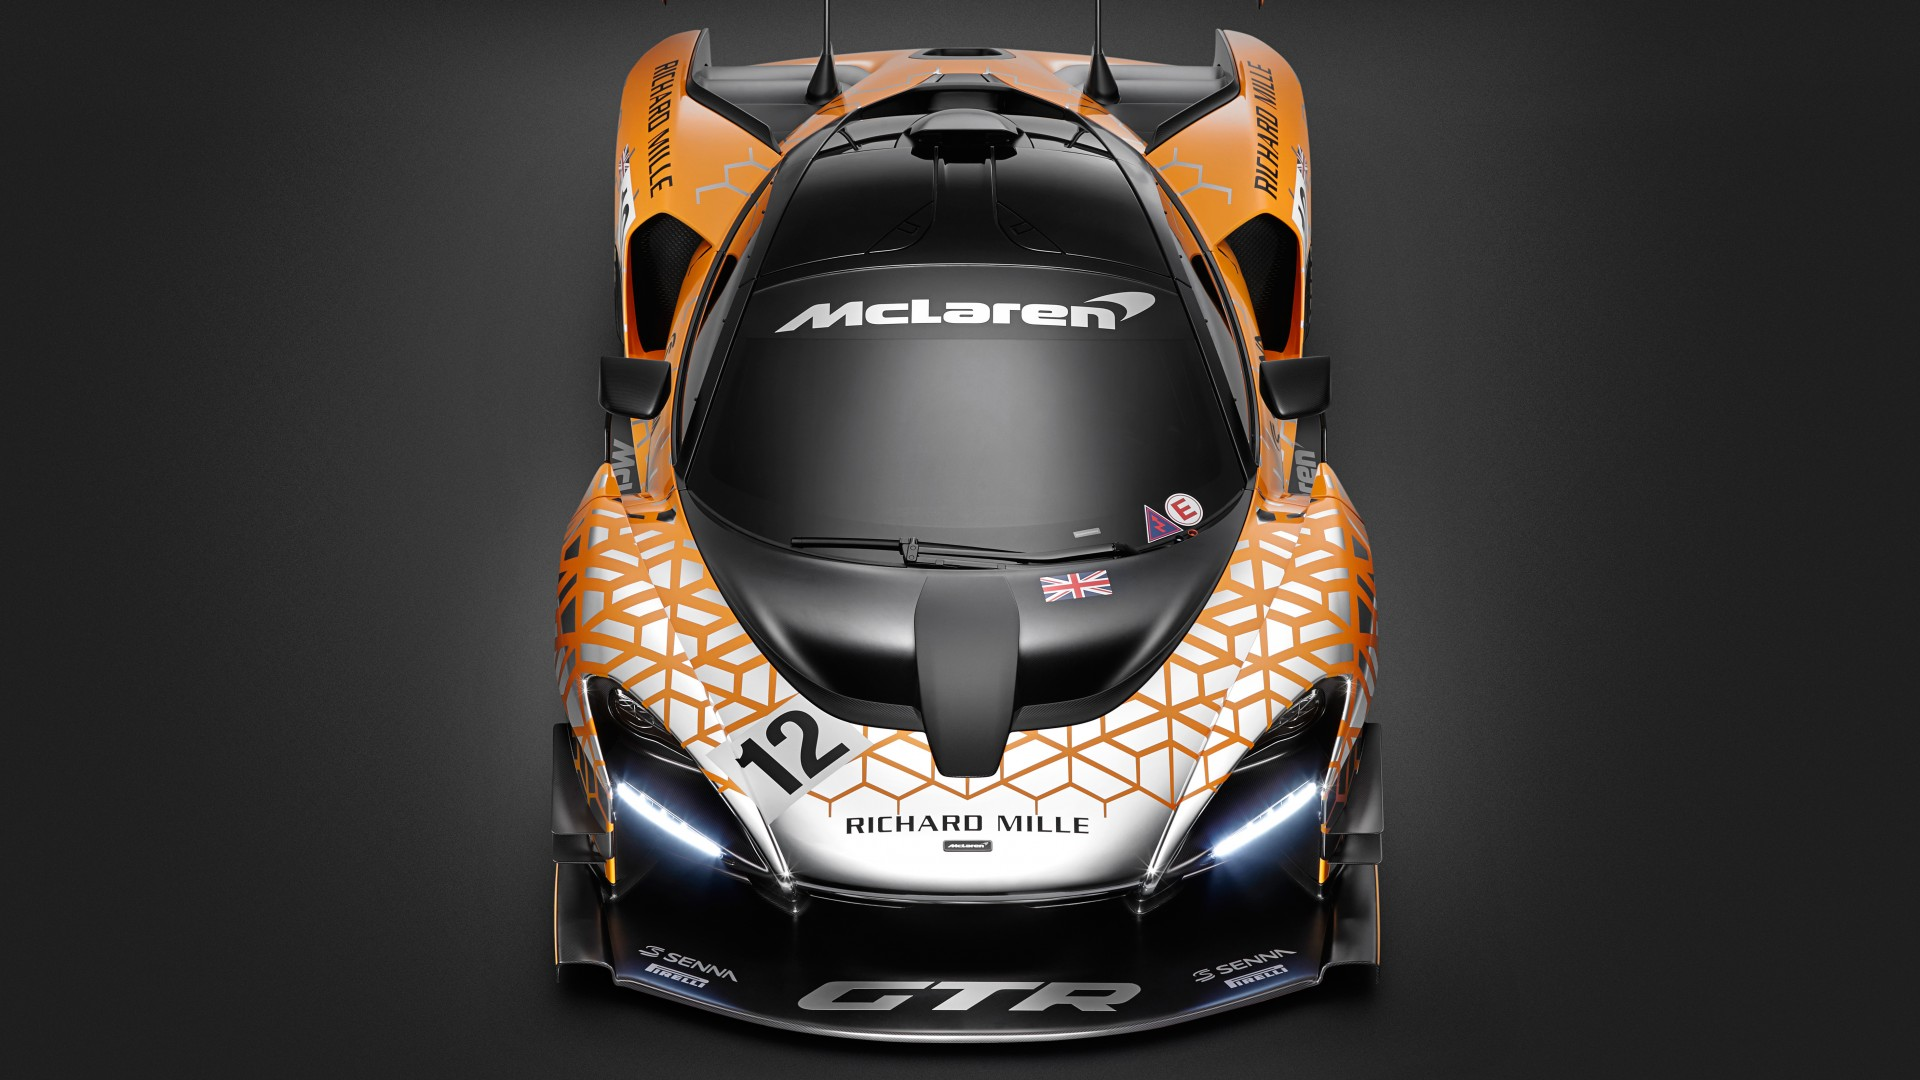 2019 McLaren Senna GTR Concept 5K 2 Wallpaper HD Car